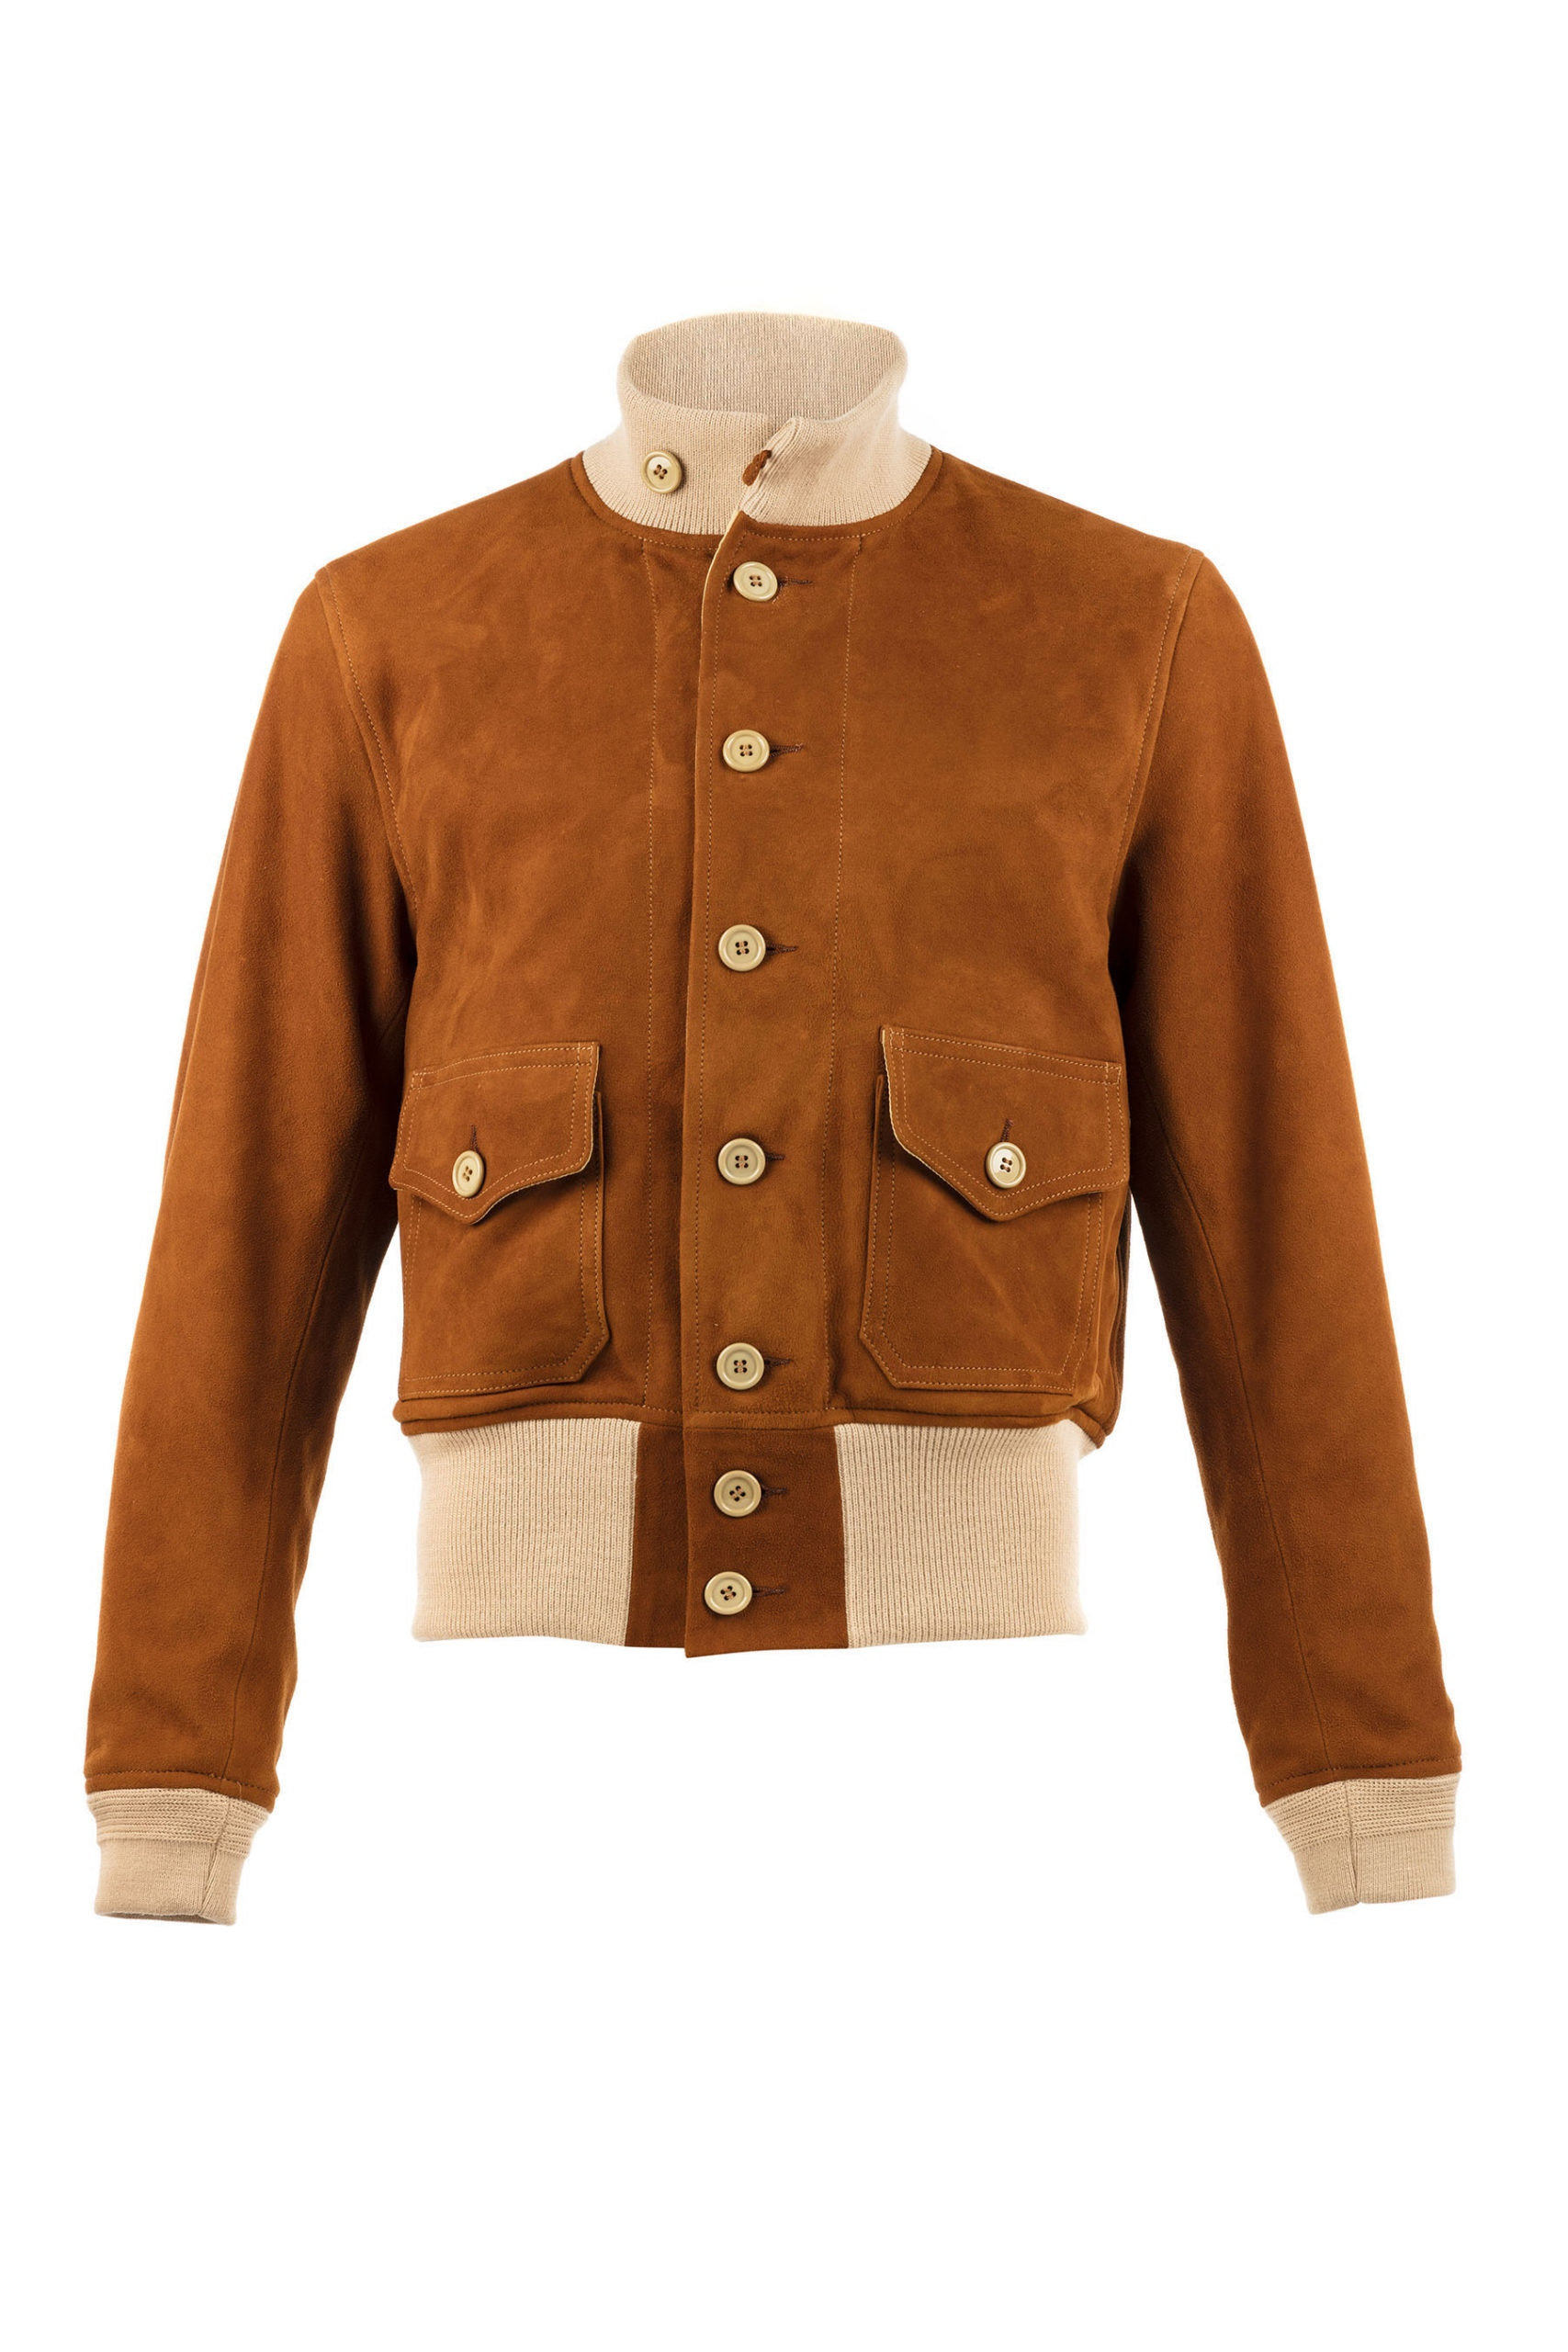 A1 Jacket - Suede leather - Suzy color